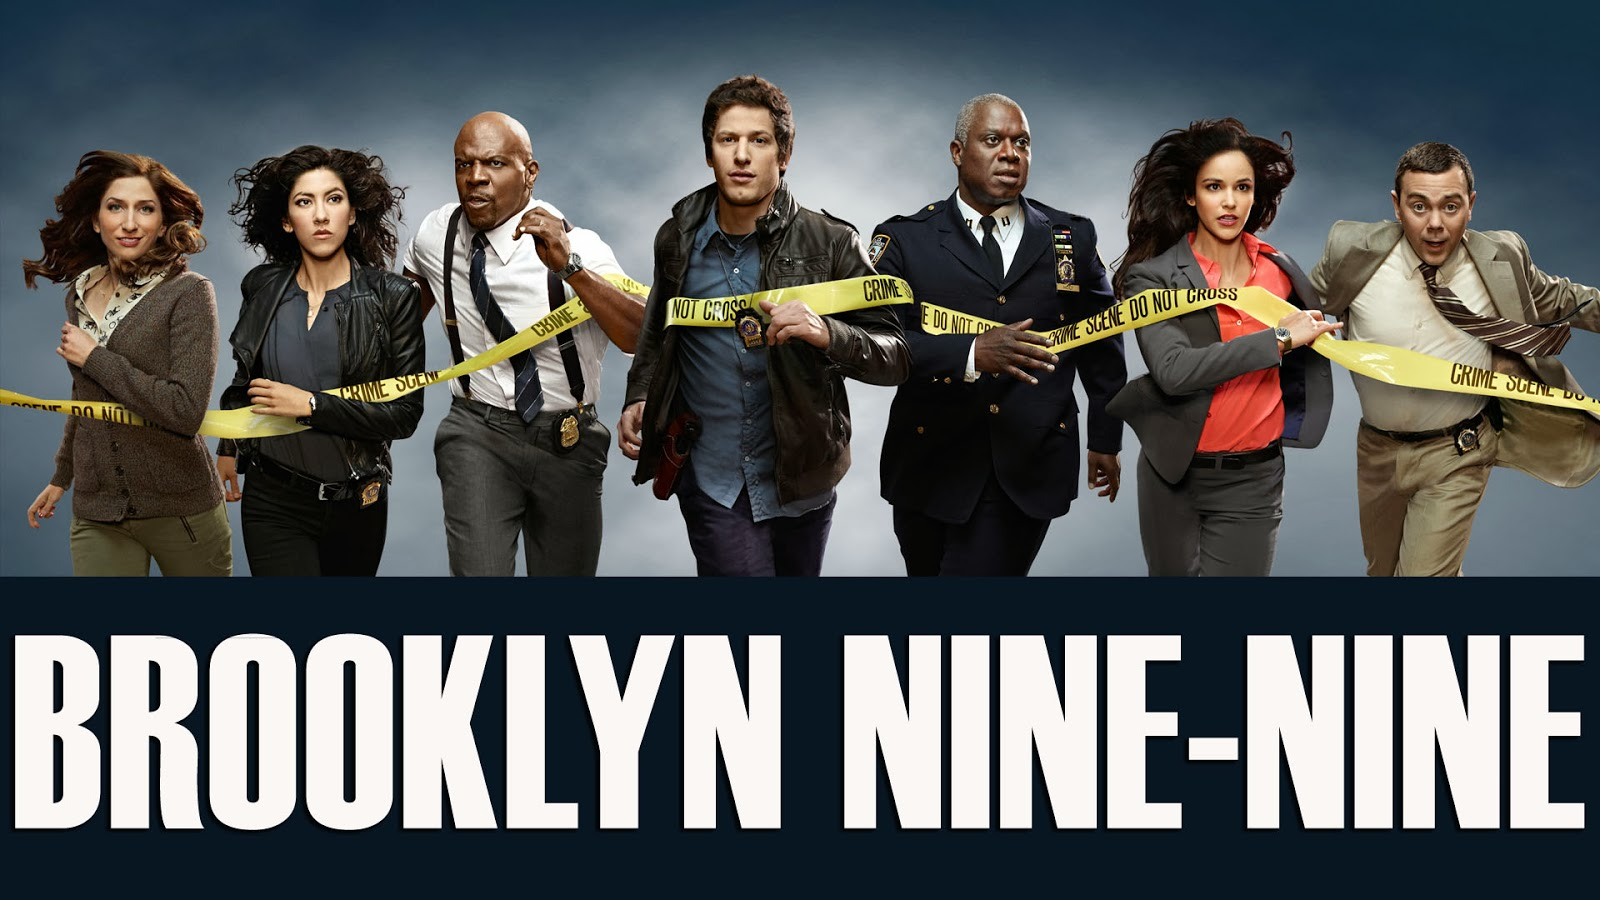 Brooklyn Nine Nine Season 2